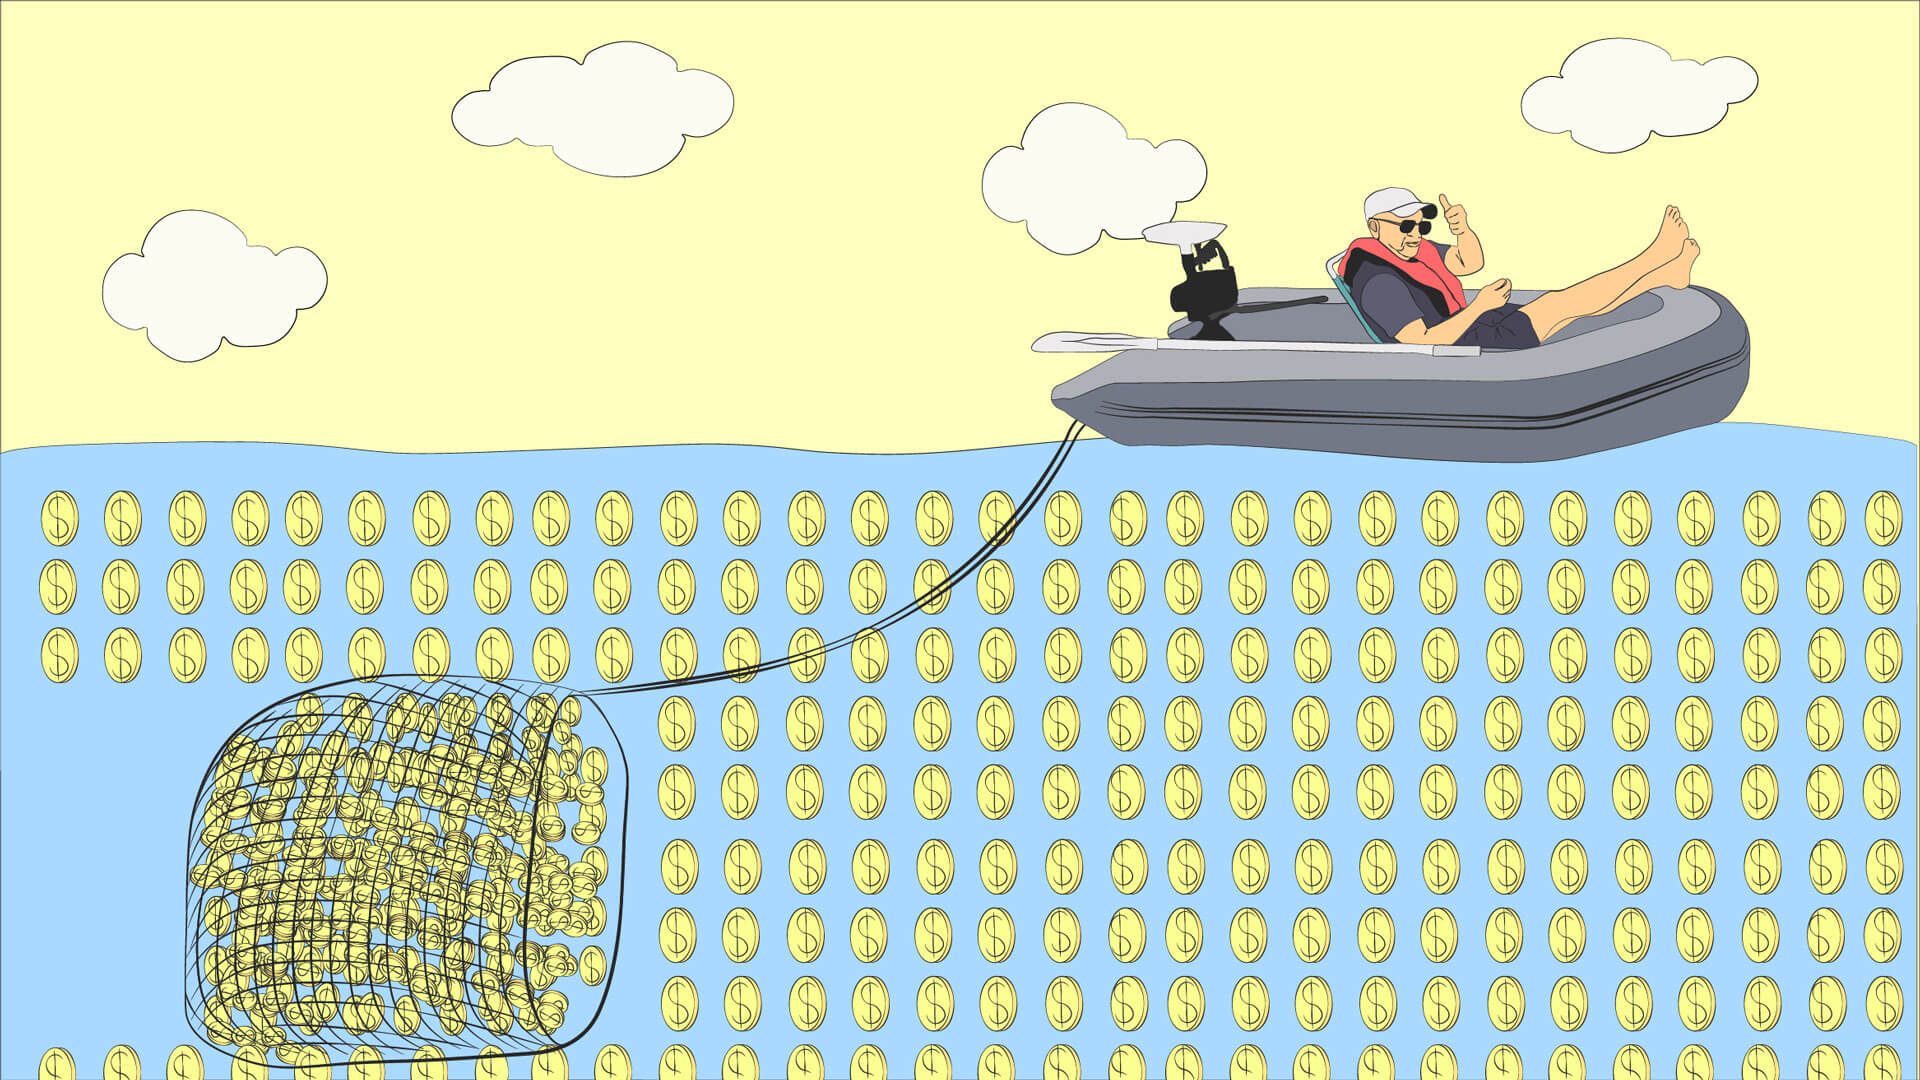 Man casts a net from a fishing boat collecting coins in the ocean to build his wealth